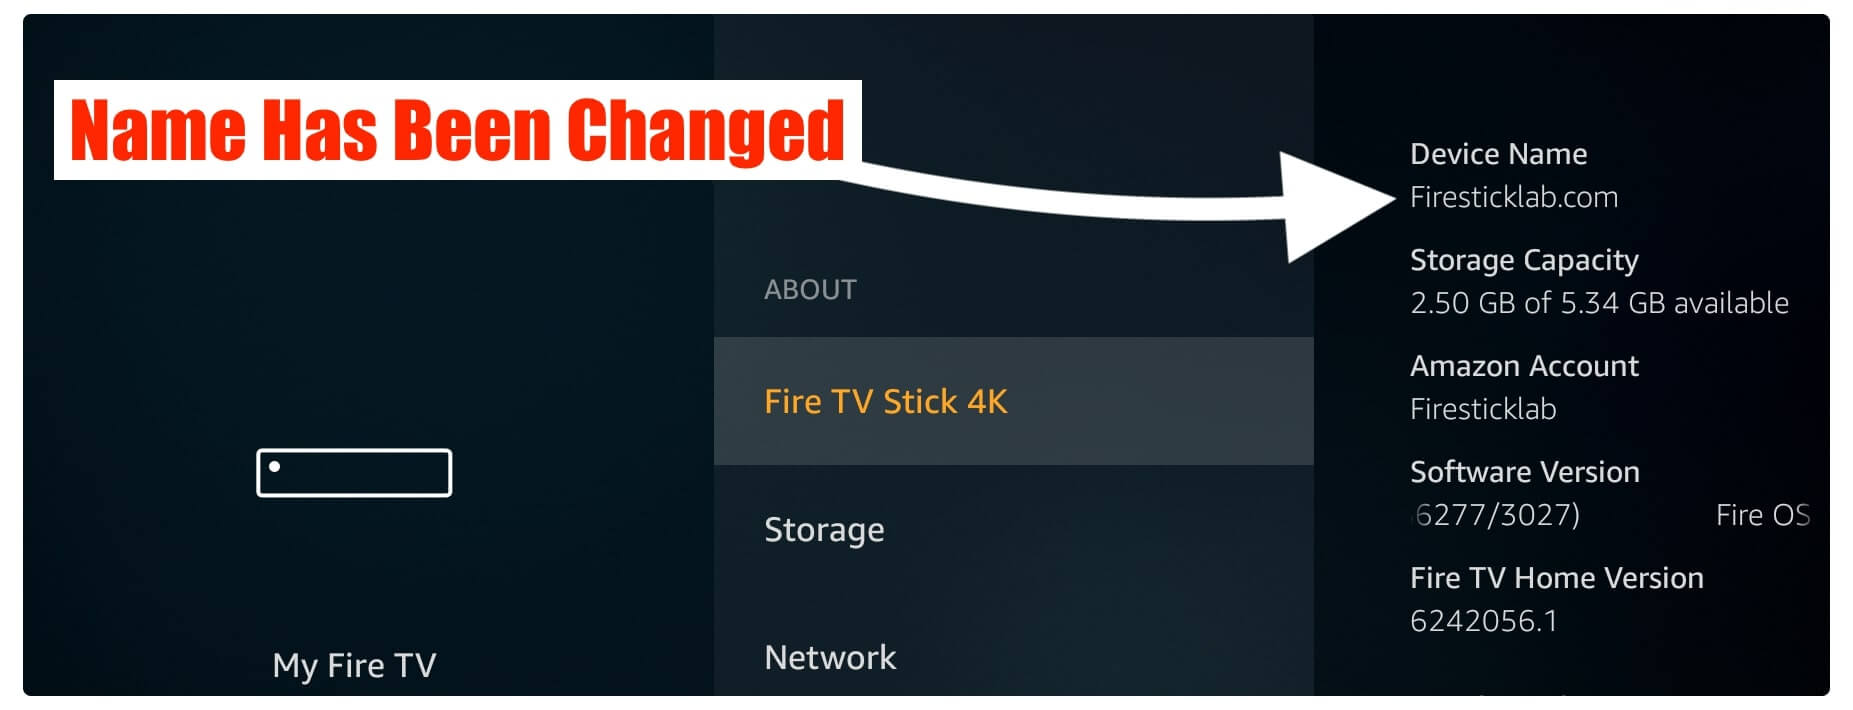 Firestick-Name-Has-been-Changed